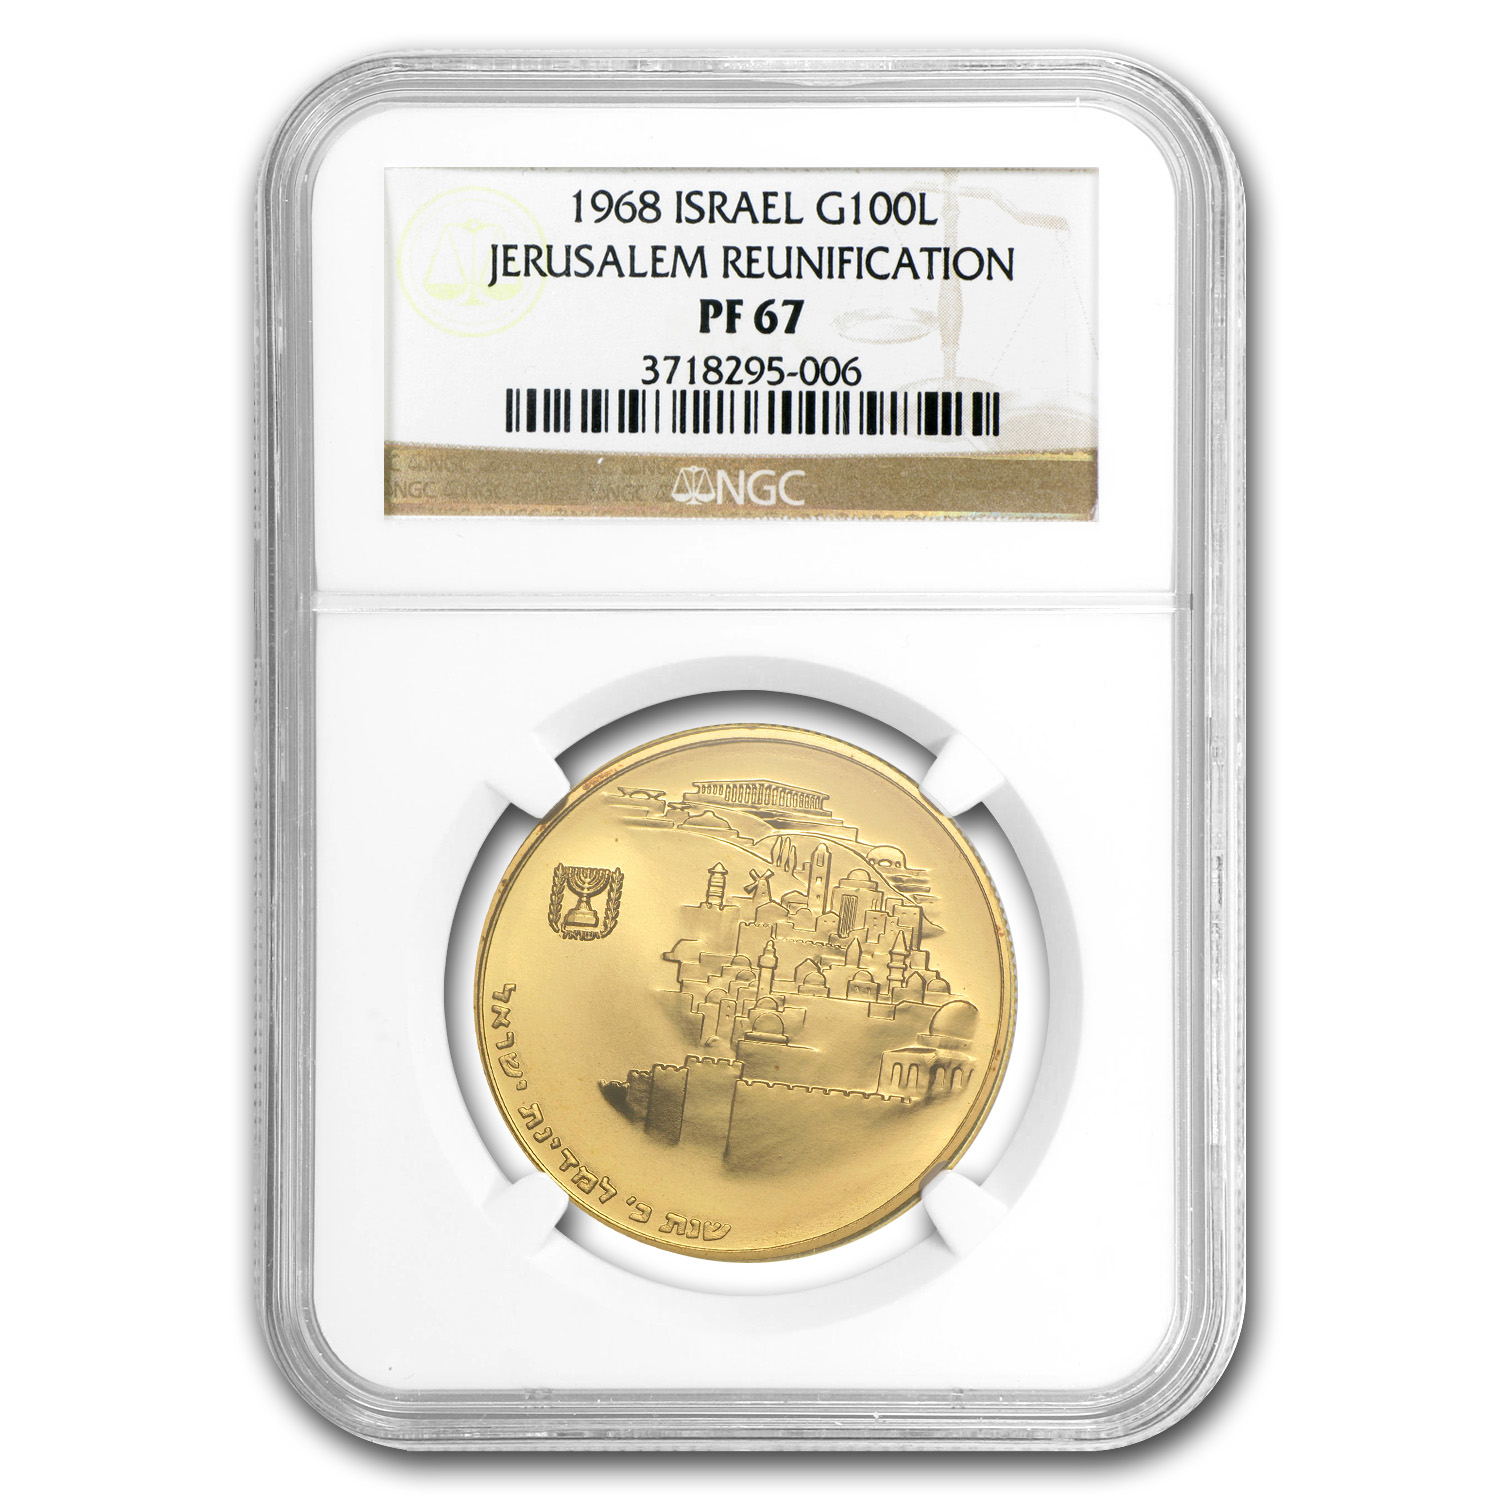 1968 Israel Gold Jerusalem Reunification 100 Lirot PF-67 NGC